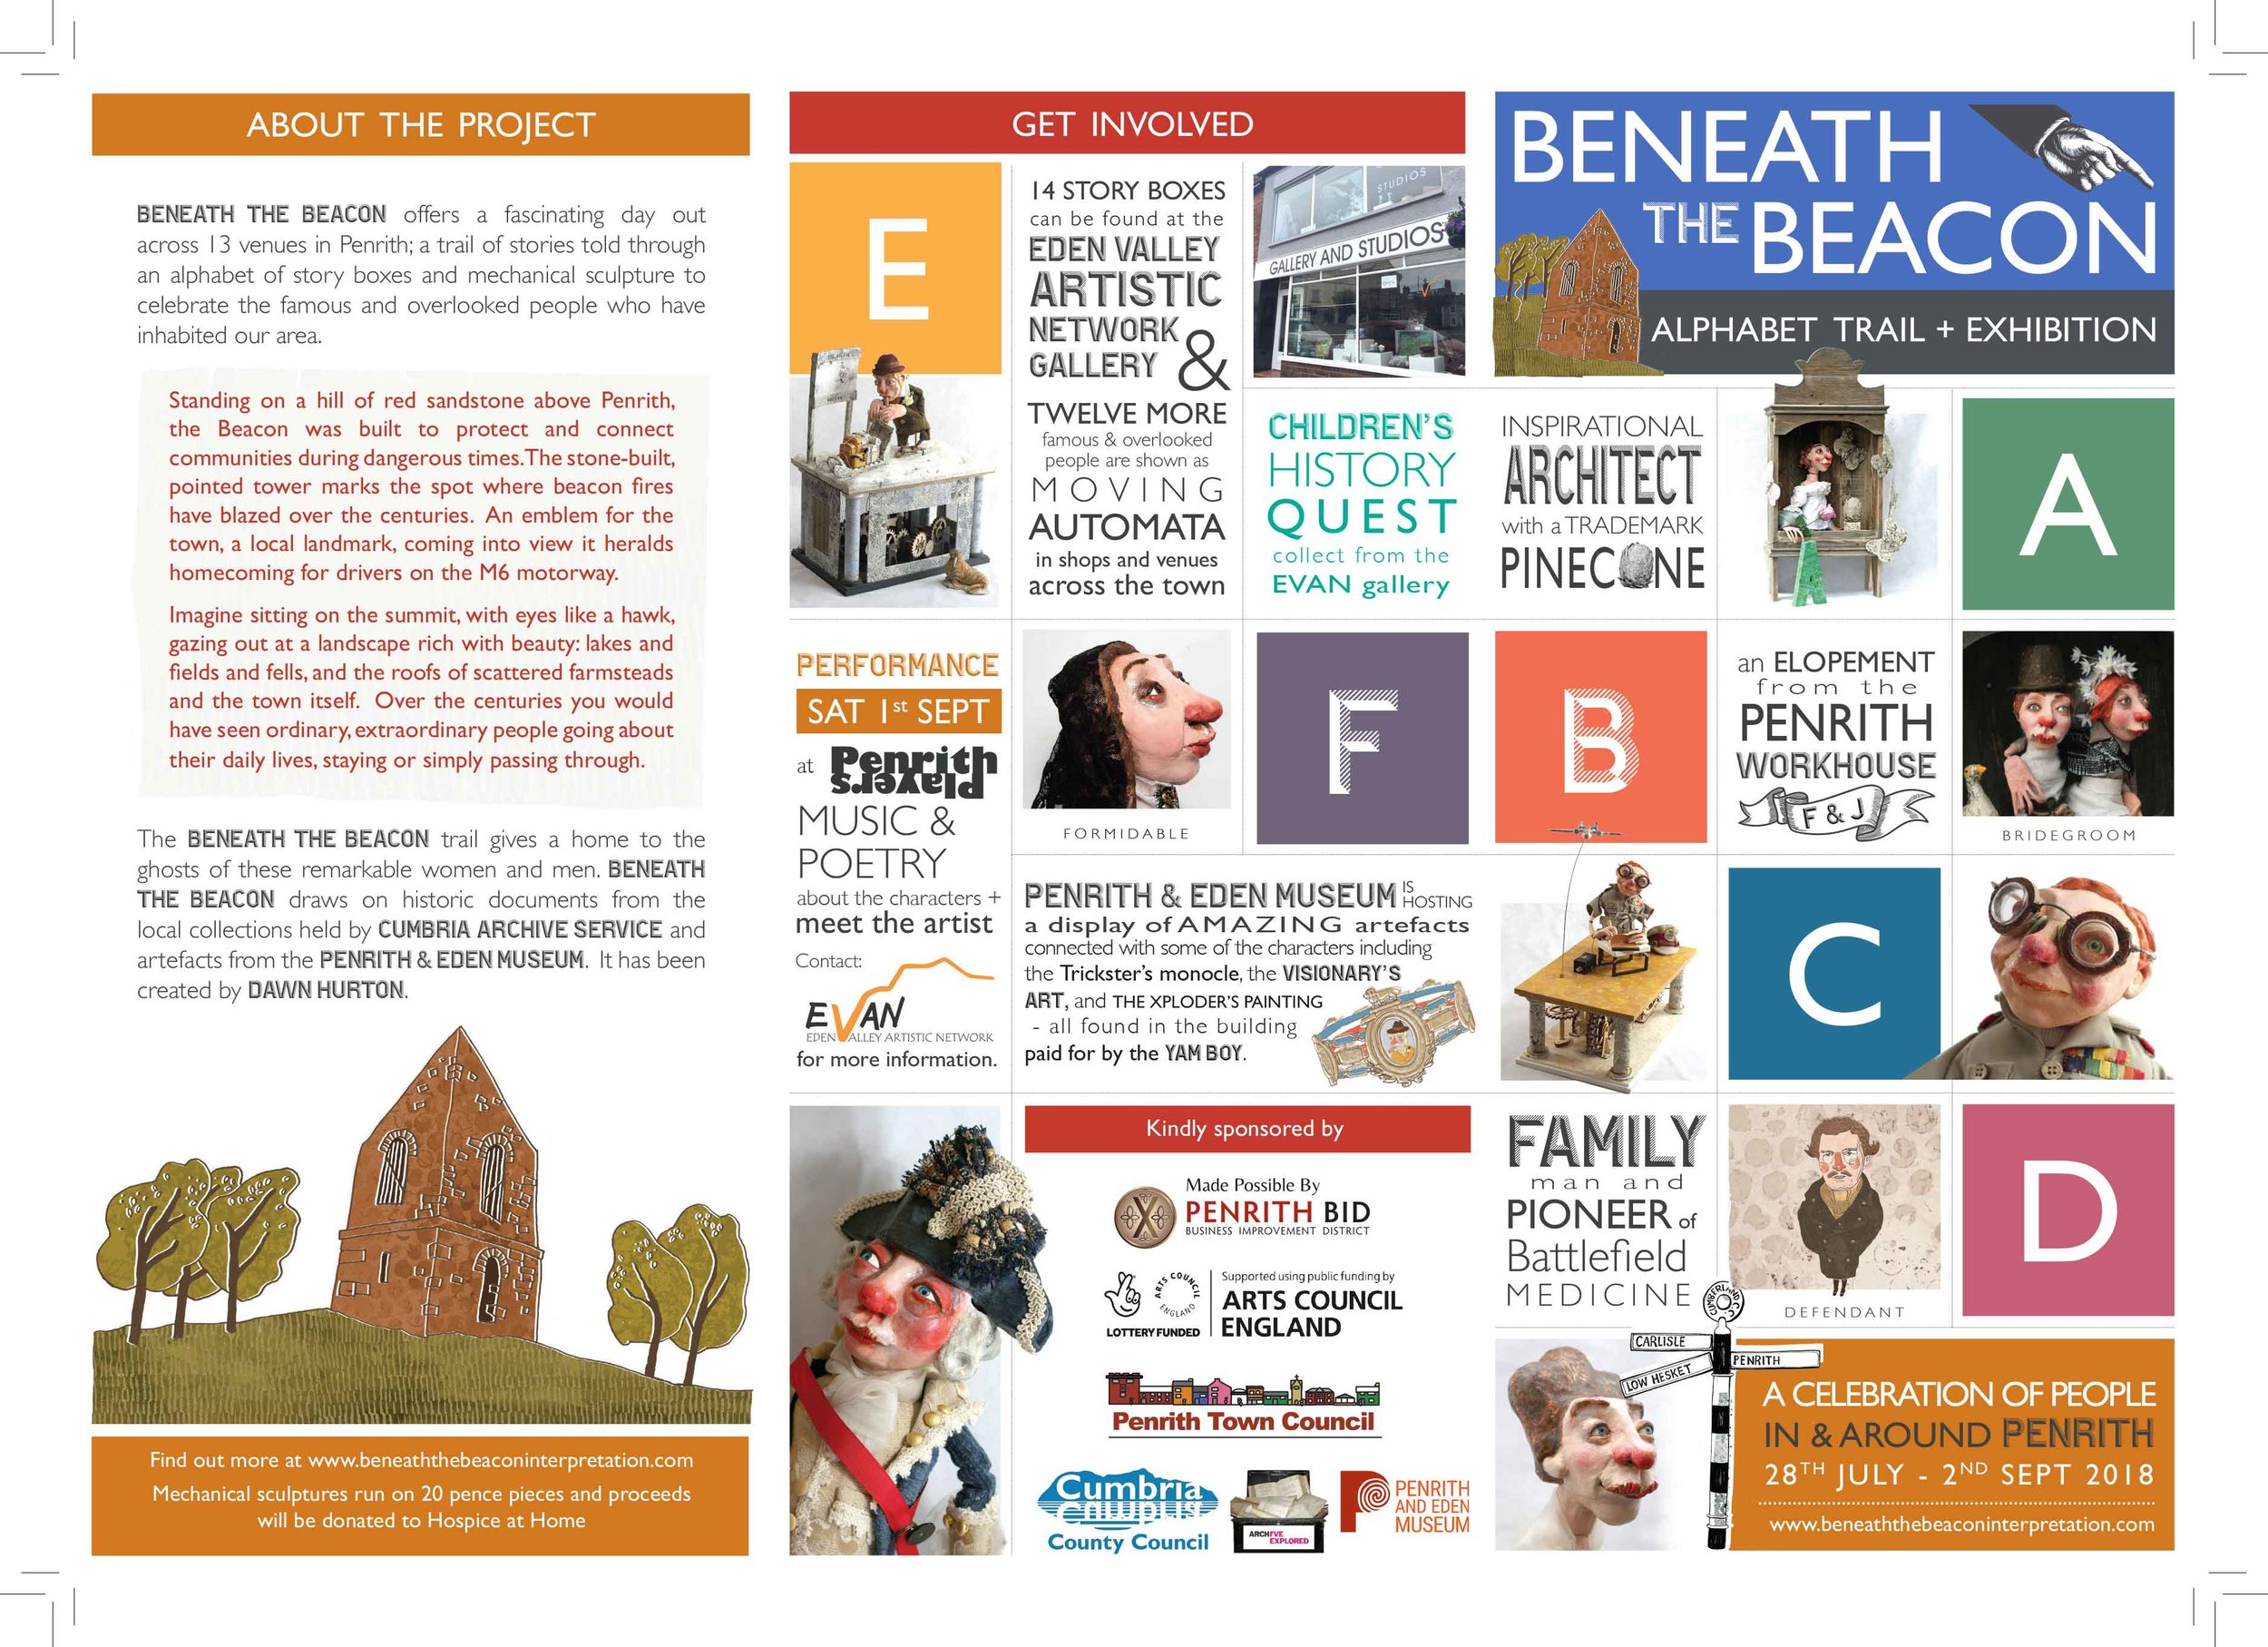 The Beneath the Beacon Trail Map is available from the EVAN Gallery on Corney Place, Penrith.